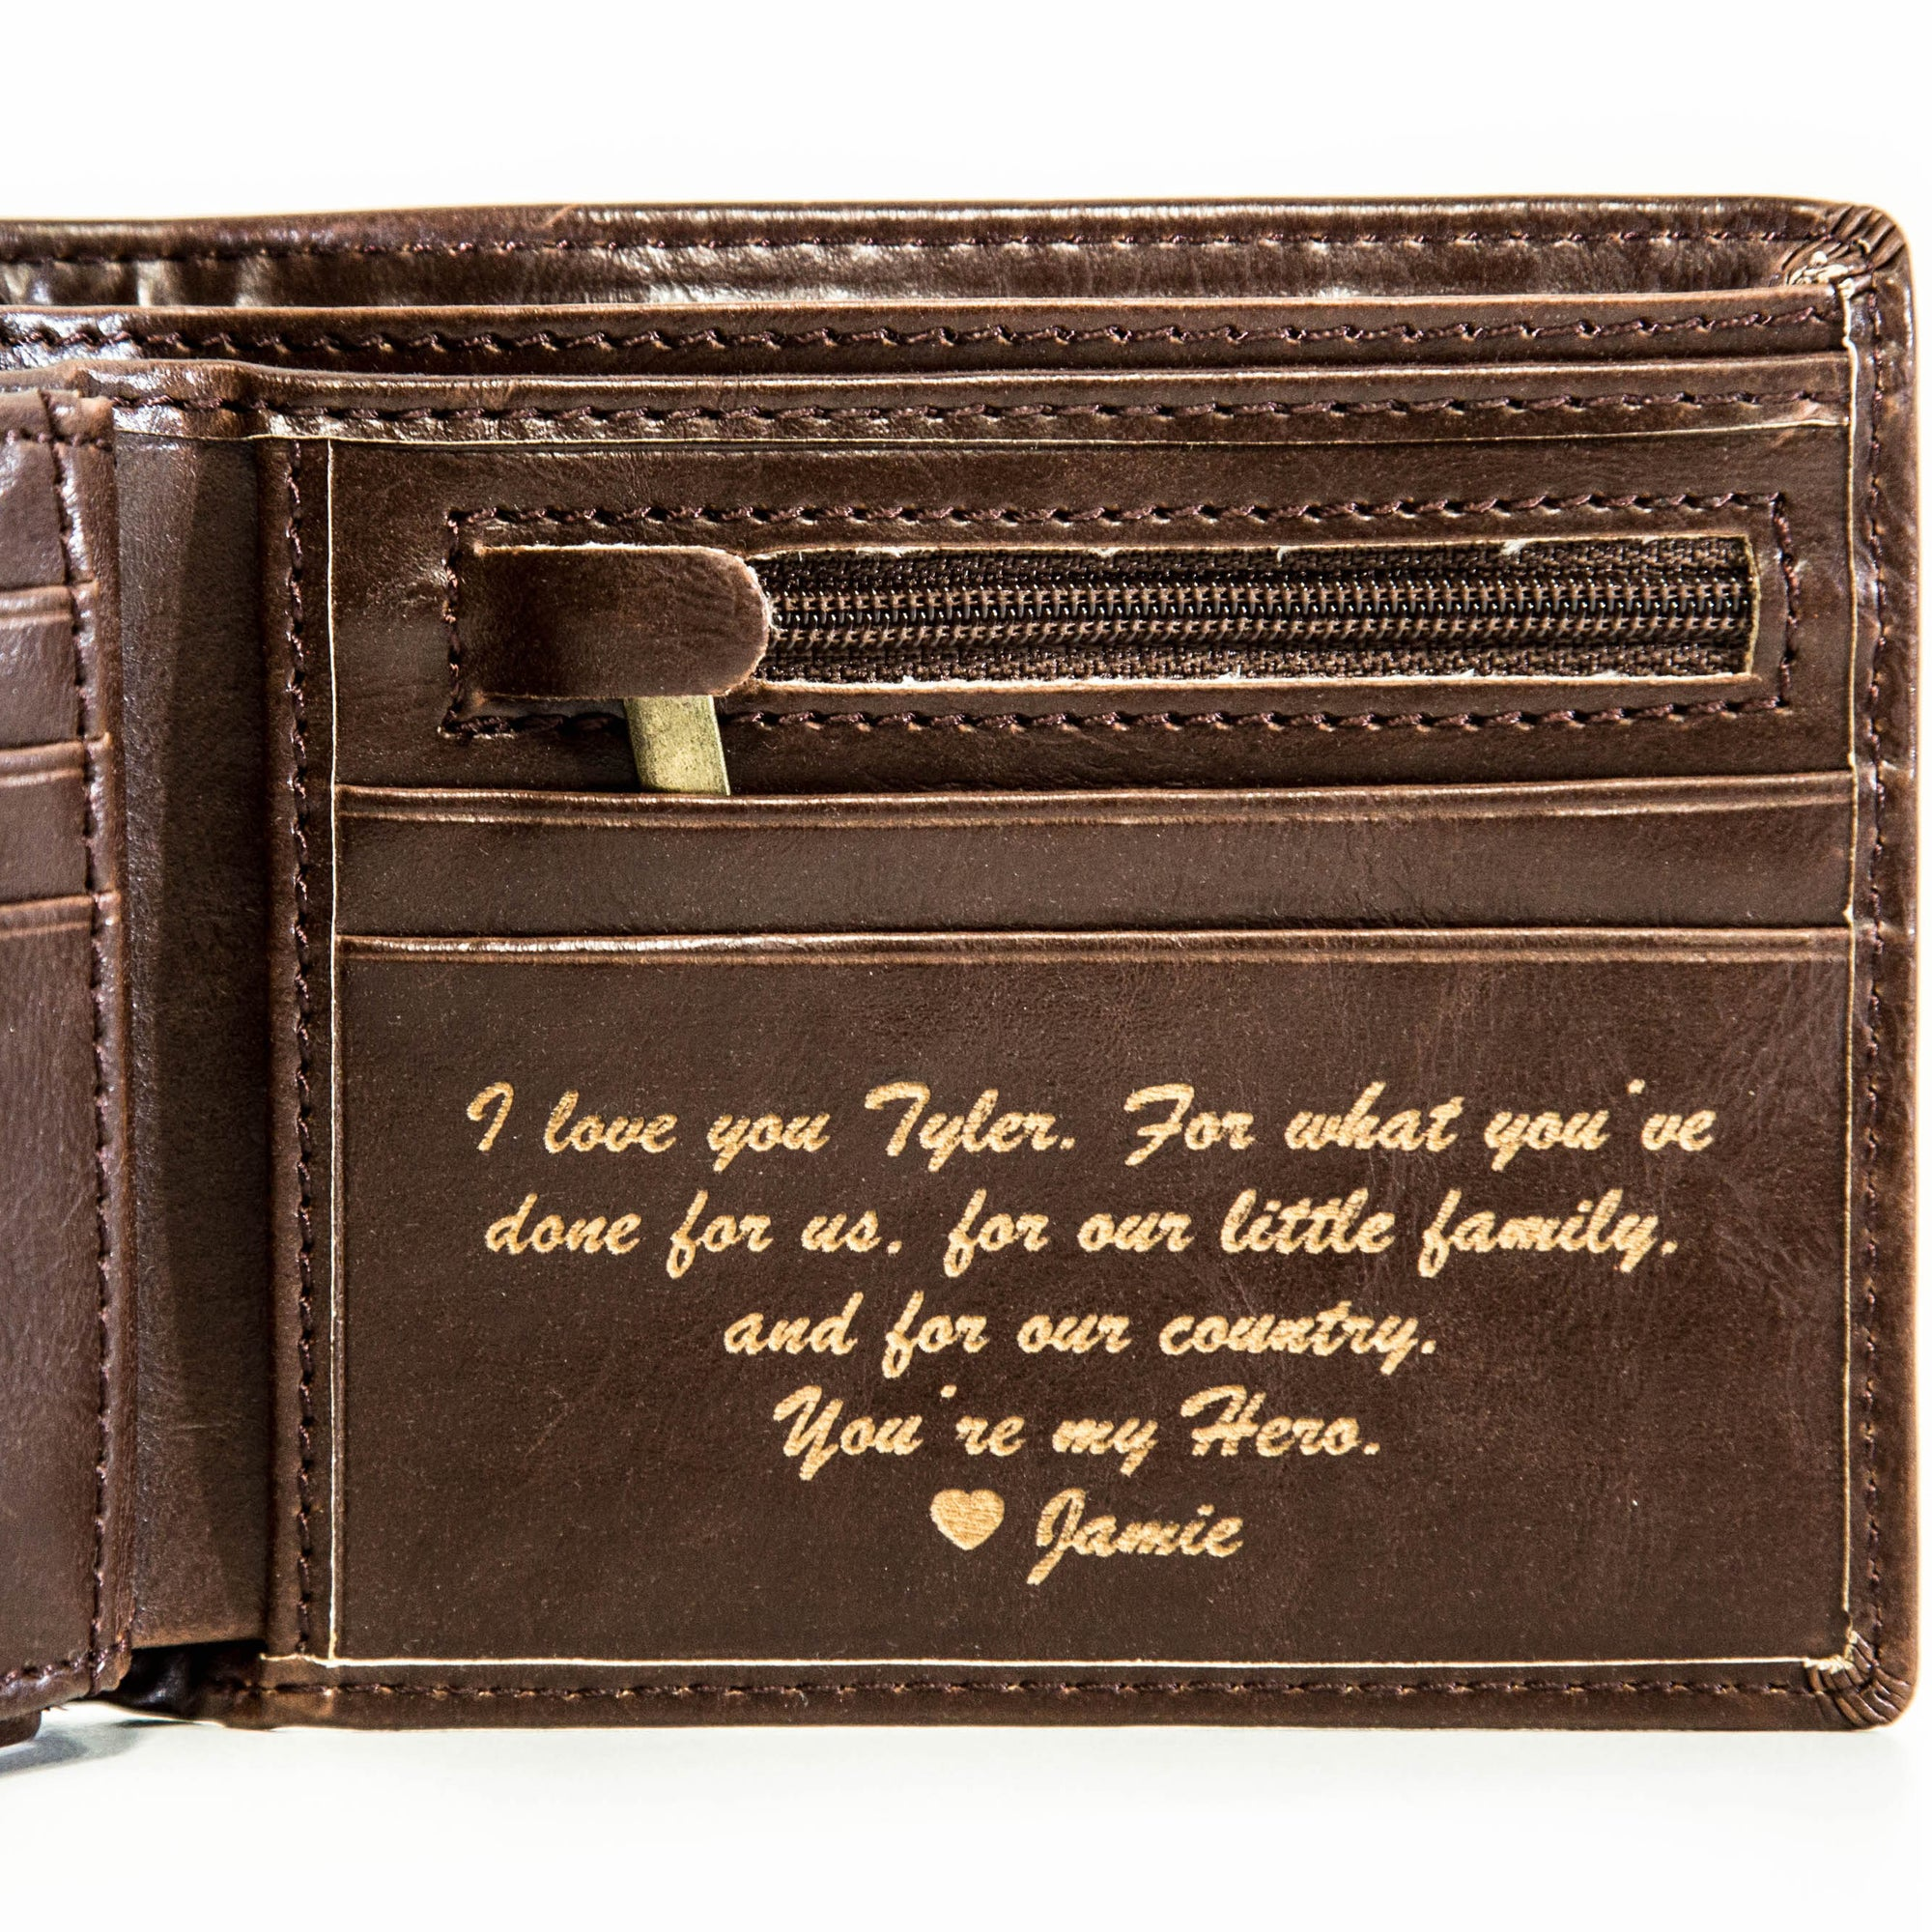 Personalized leather wallet with a special note